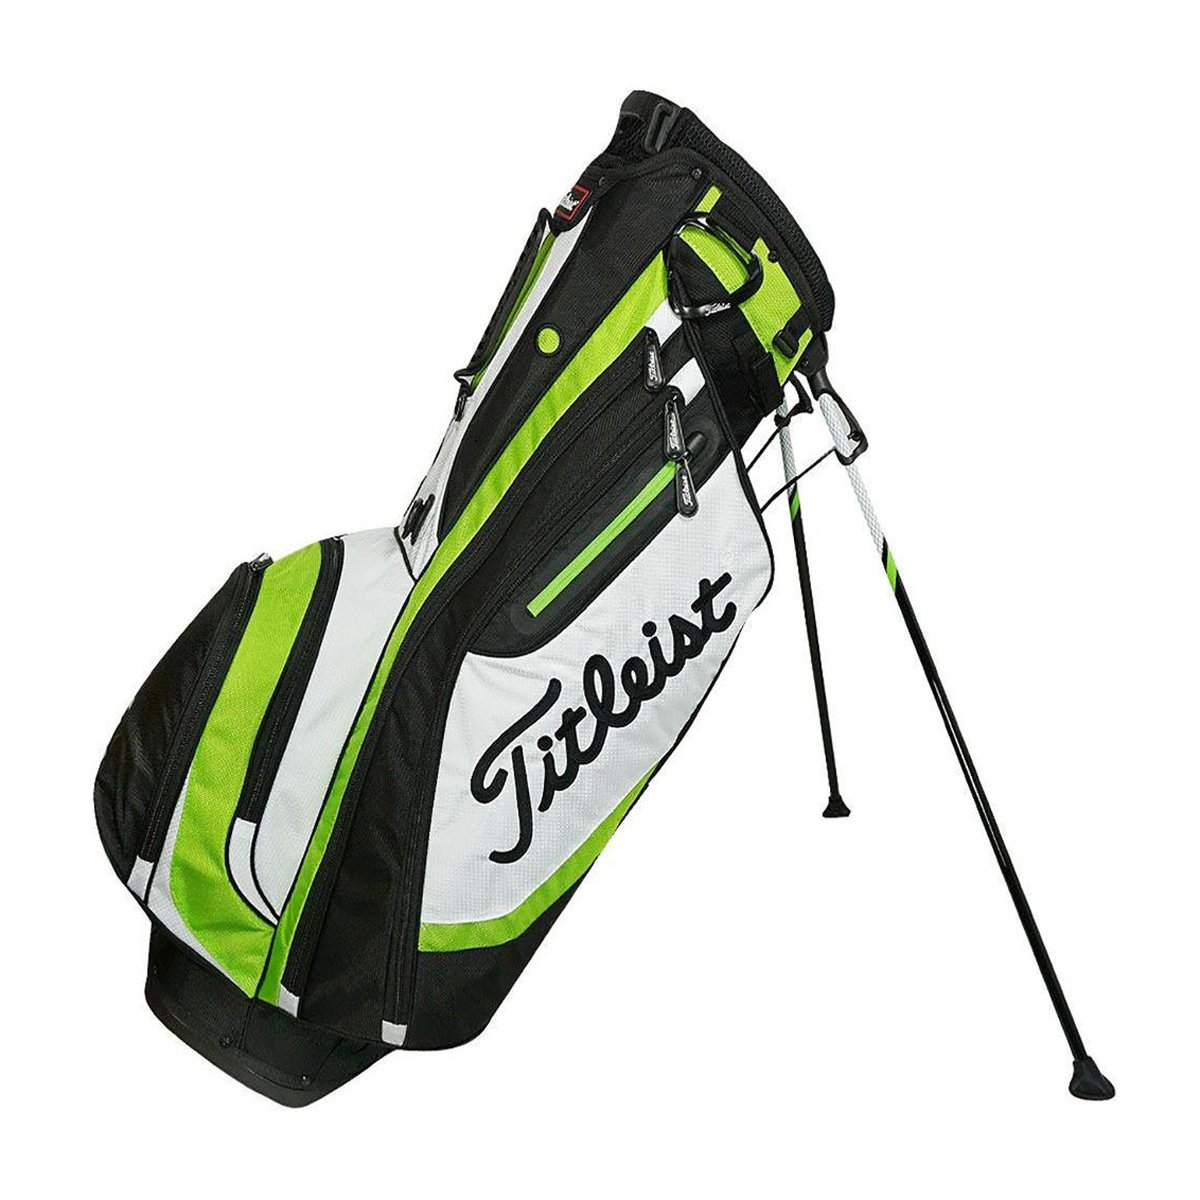 Titleist Lightweight 4-Way Stand Golf Club Bag with Backpack Strap, Lime Green by Titleist (Image #1)